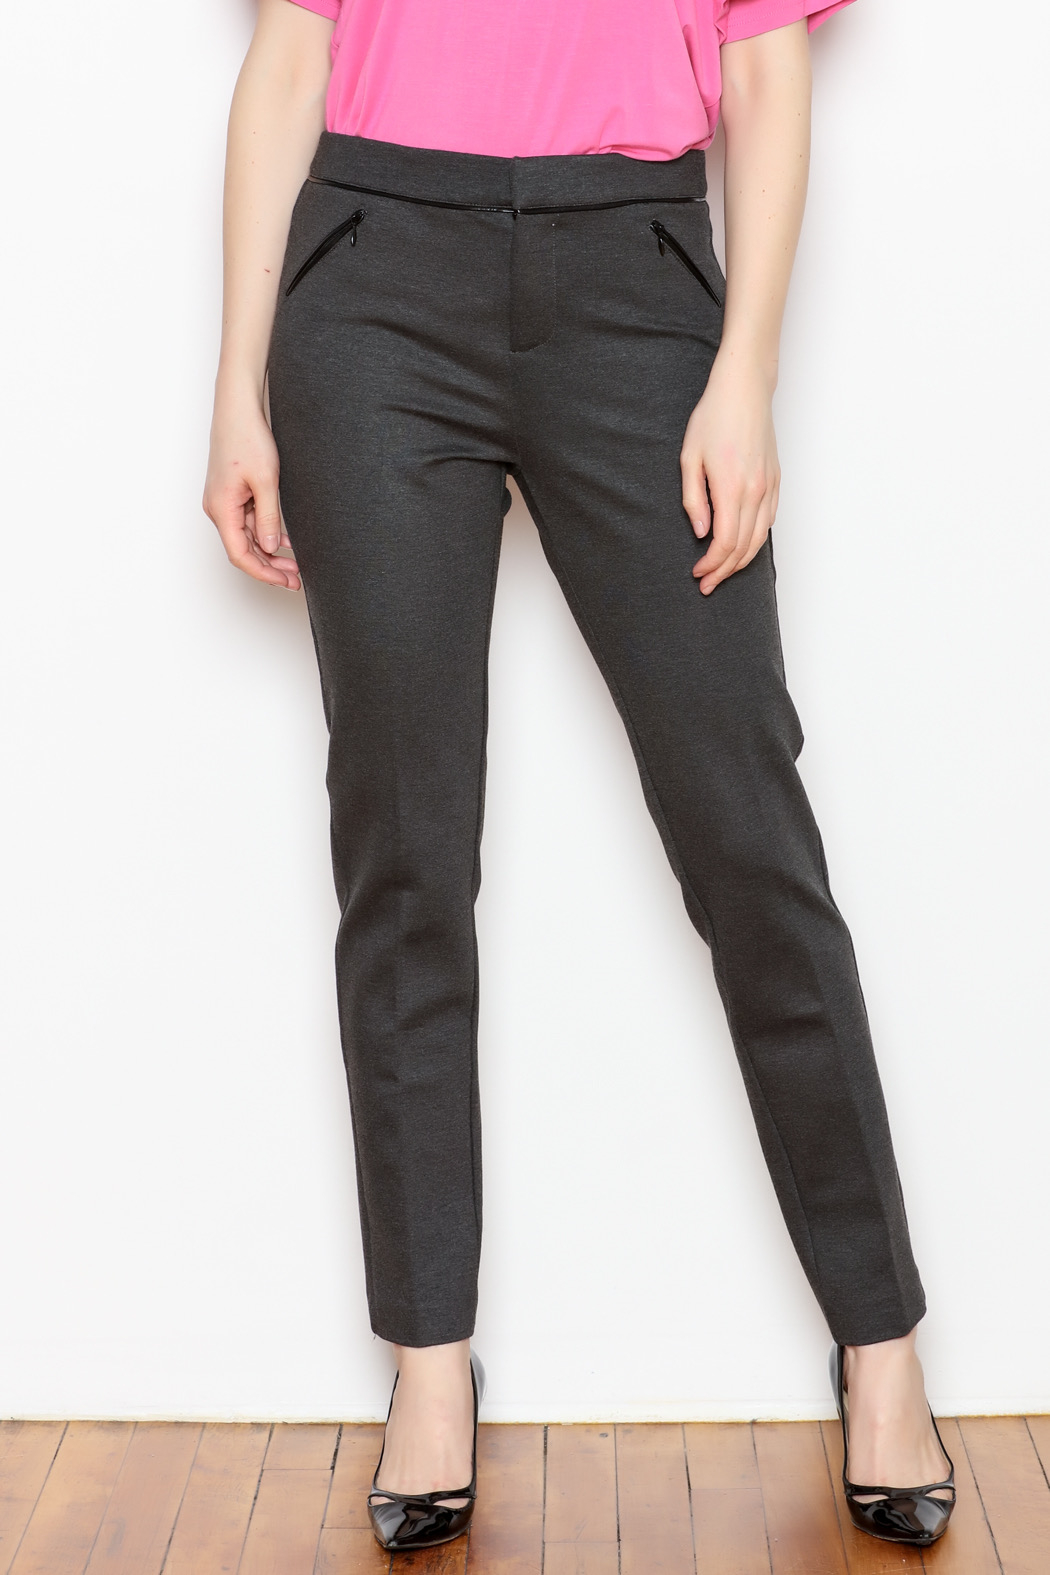 Tyler Boe Maddie Faux Leather Trim Pant - Main Image